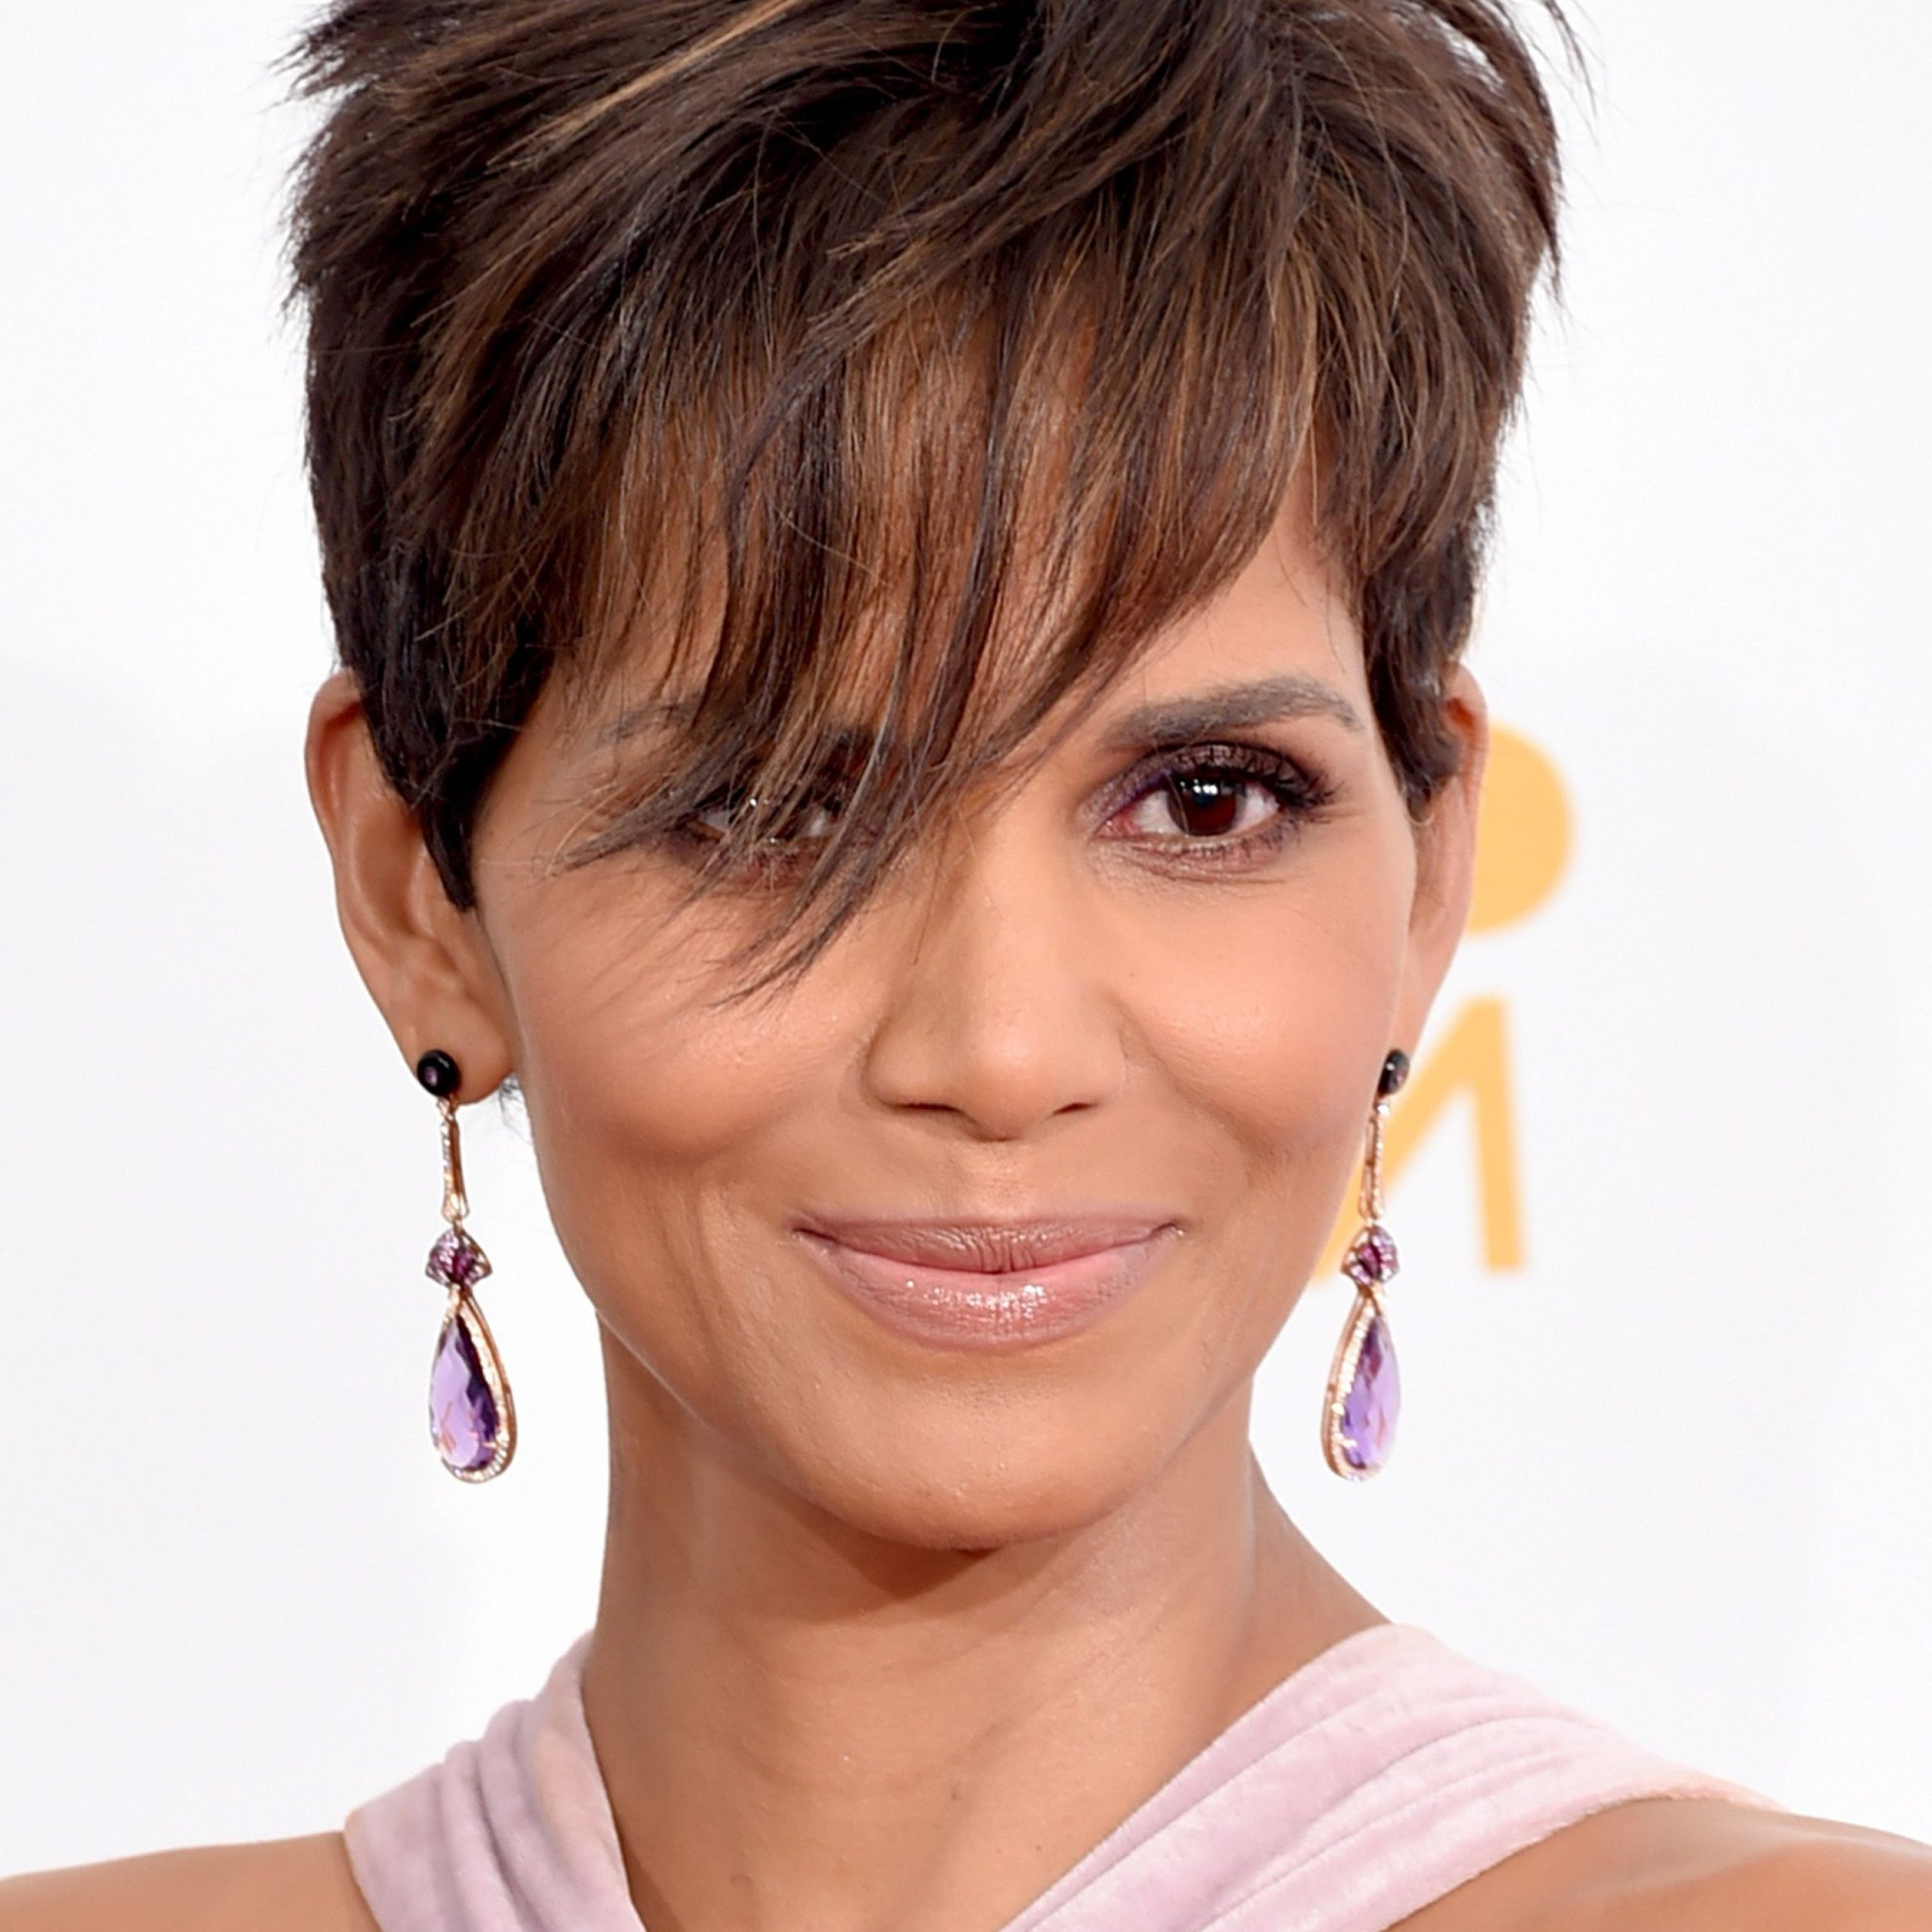 40 Best Short Pixie Cut Hairstyles 2020 – Cute Pixie Inside Best And Newest Elegant Feathered Undercut Pixie Hairstyles (View 18 of 20)